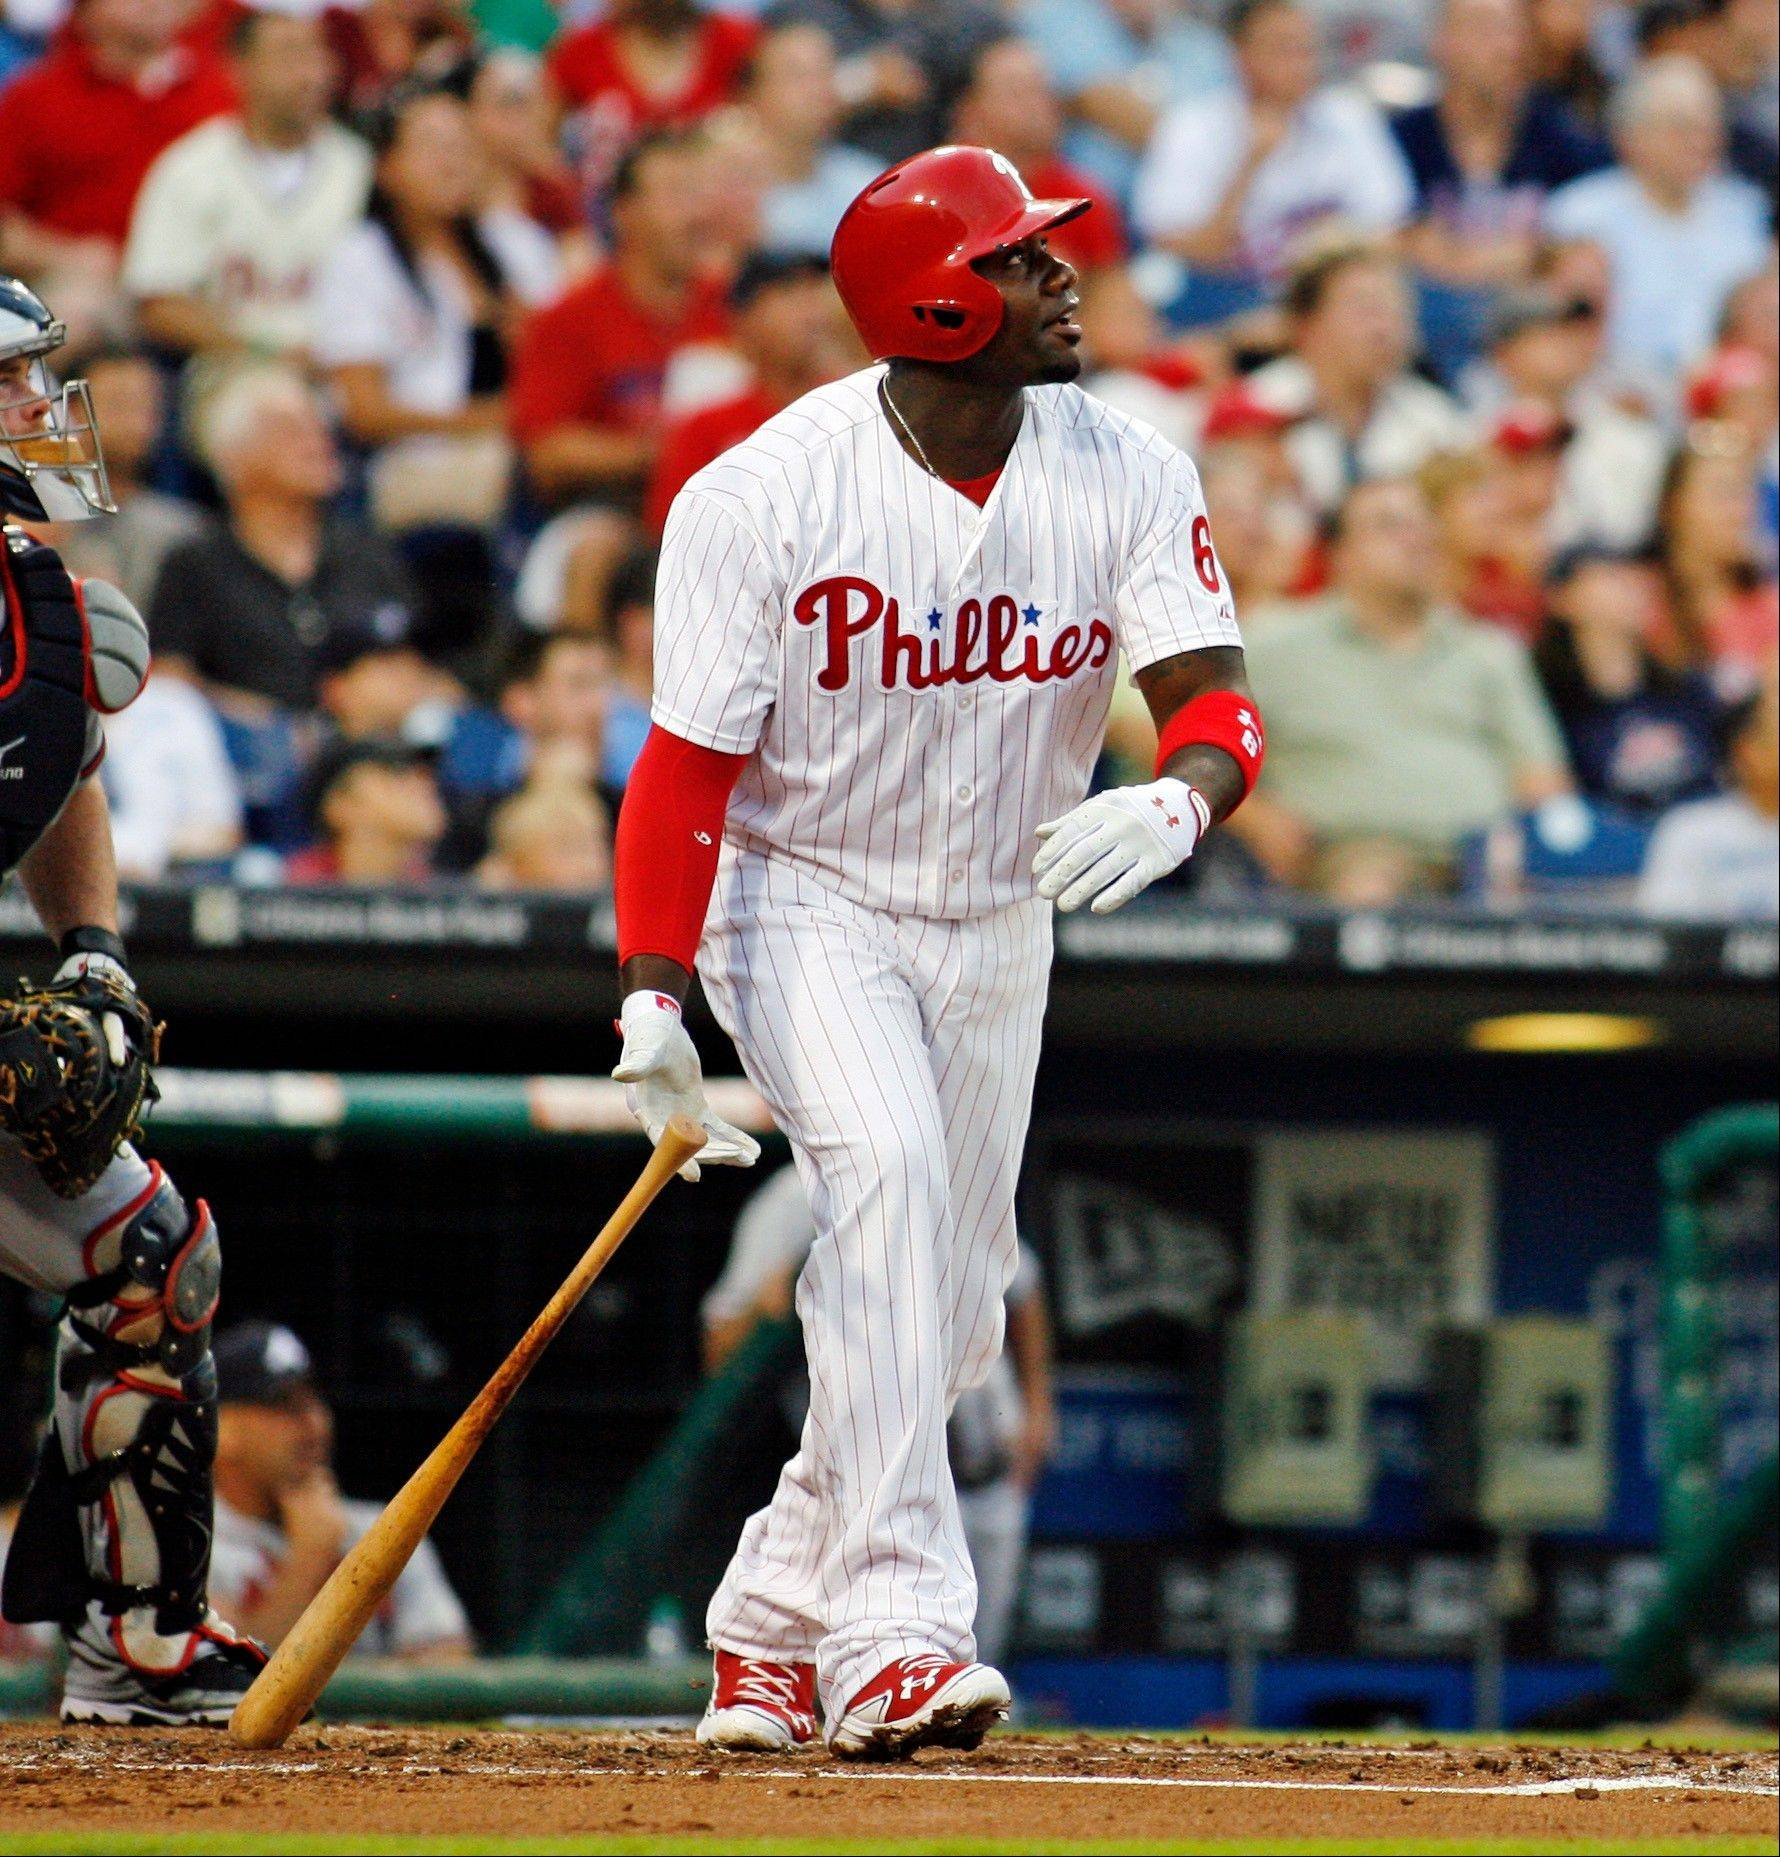 Philadelphia Phillies first baseman Ryan Howard watches his two-run home run against the Atlanta Braves Tuesday during the first inning.